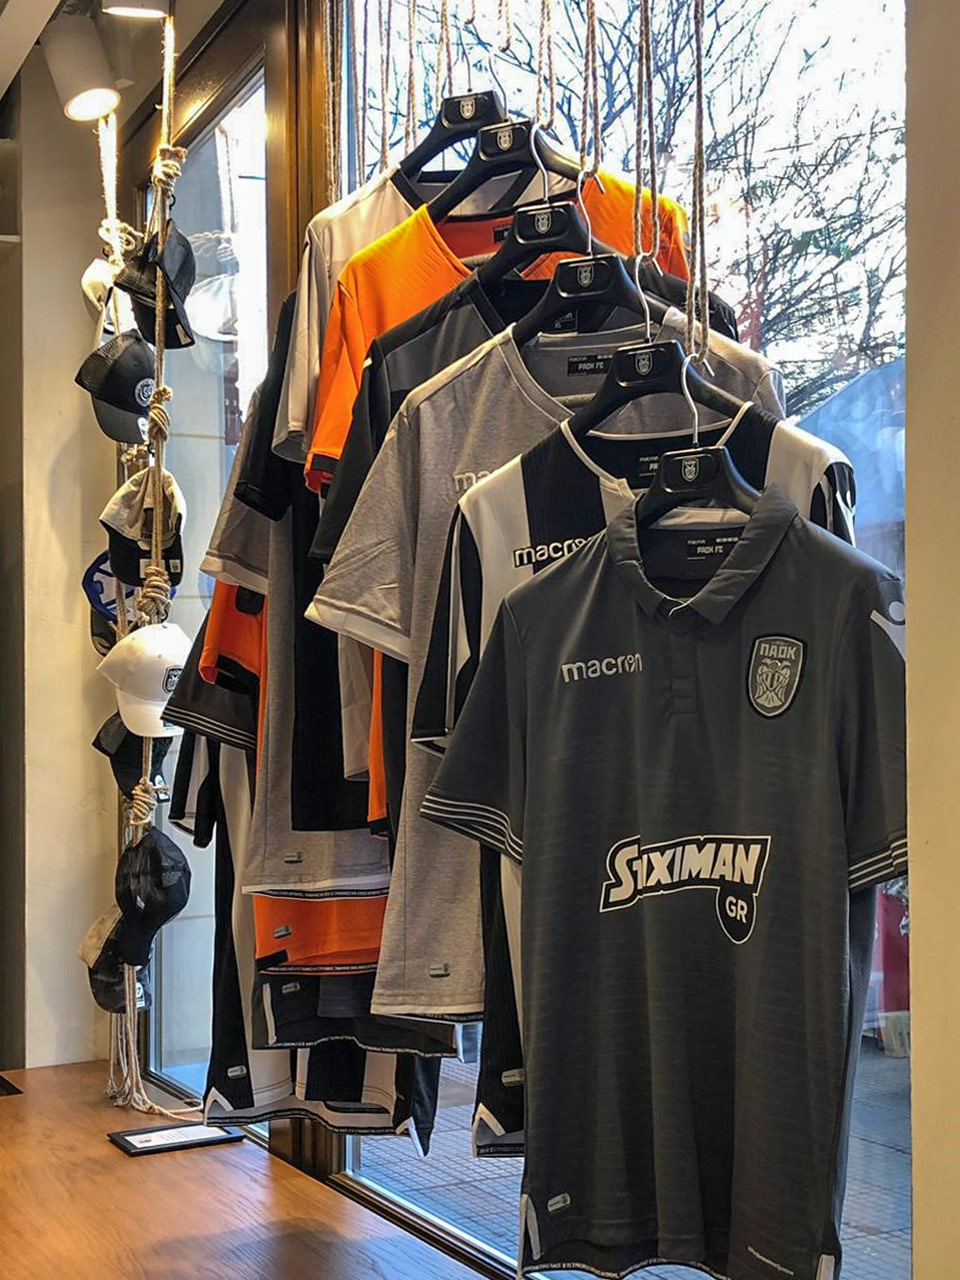 PAOK FC City Store 1926 | Boutique of Football Club Paok